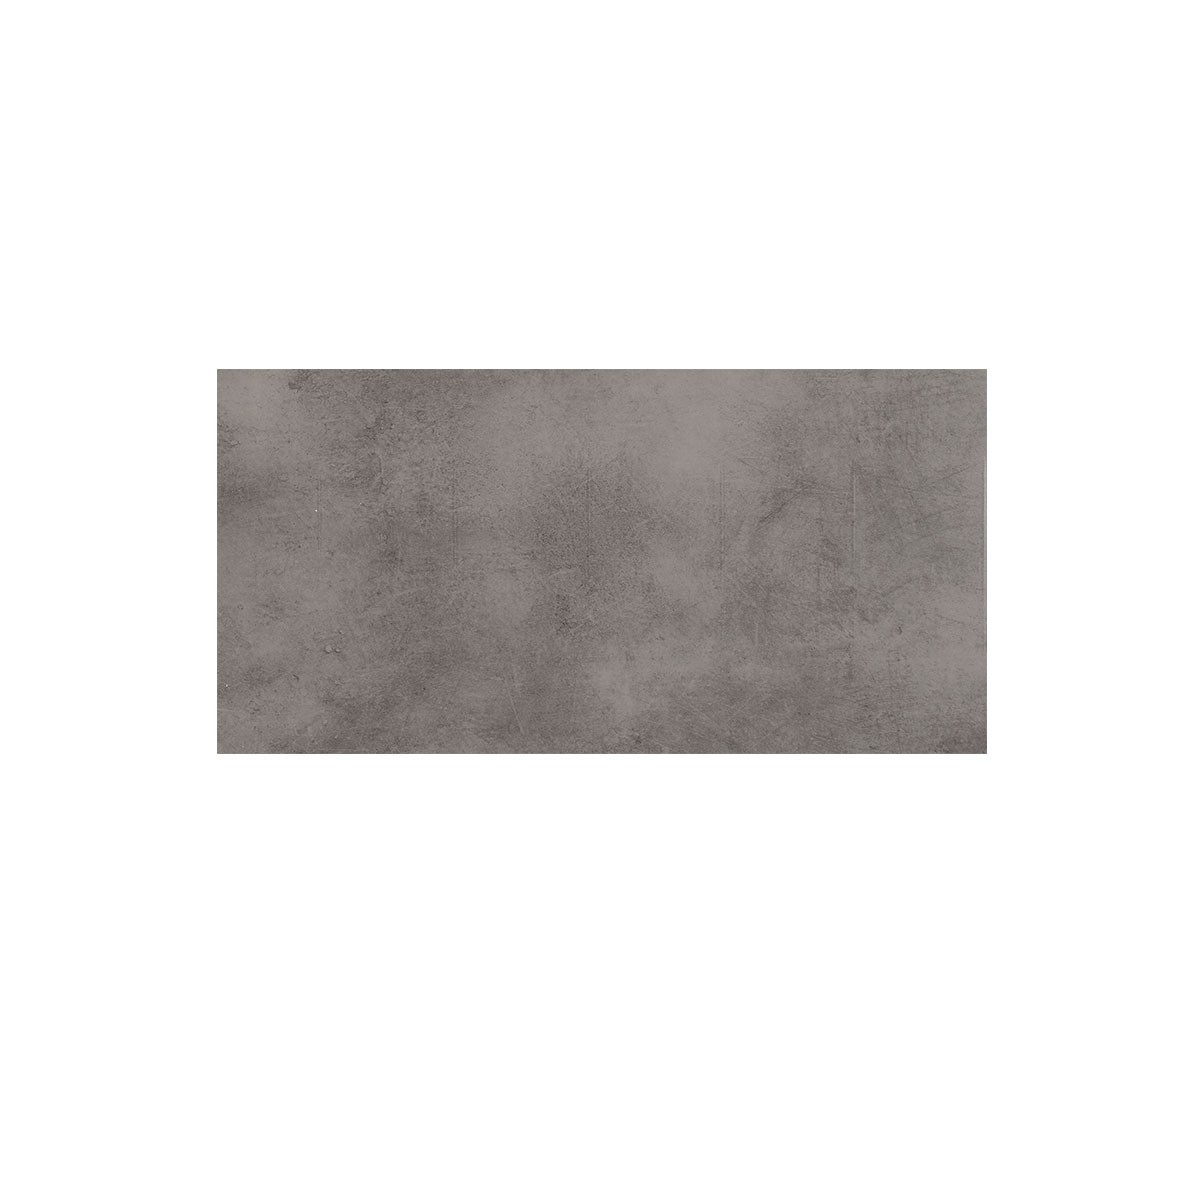 DECORAPORT NWS Wall Panel, Luxor Medium, 4'' x6'' (NLS-03) (Sample)